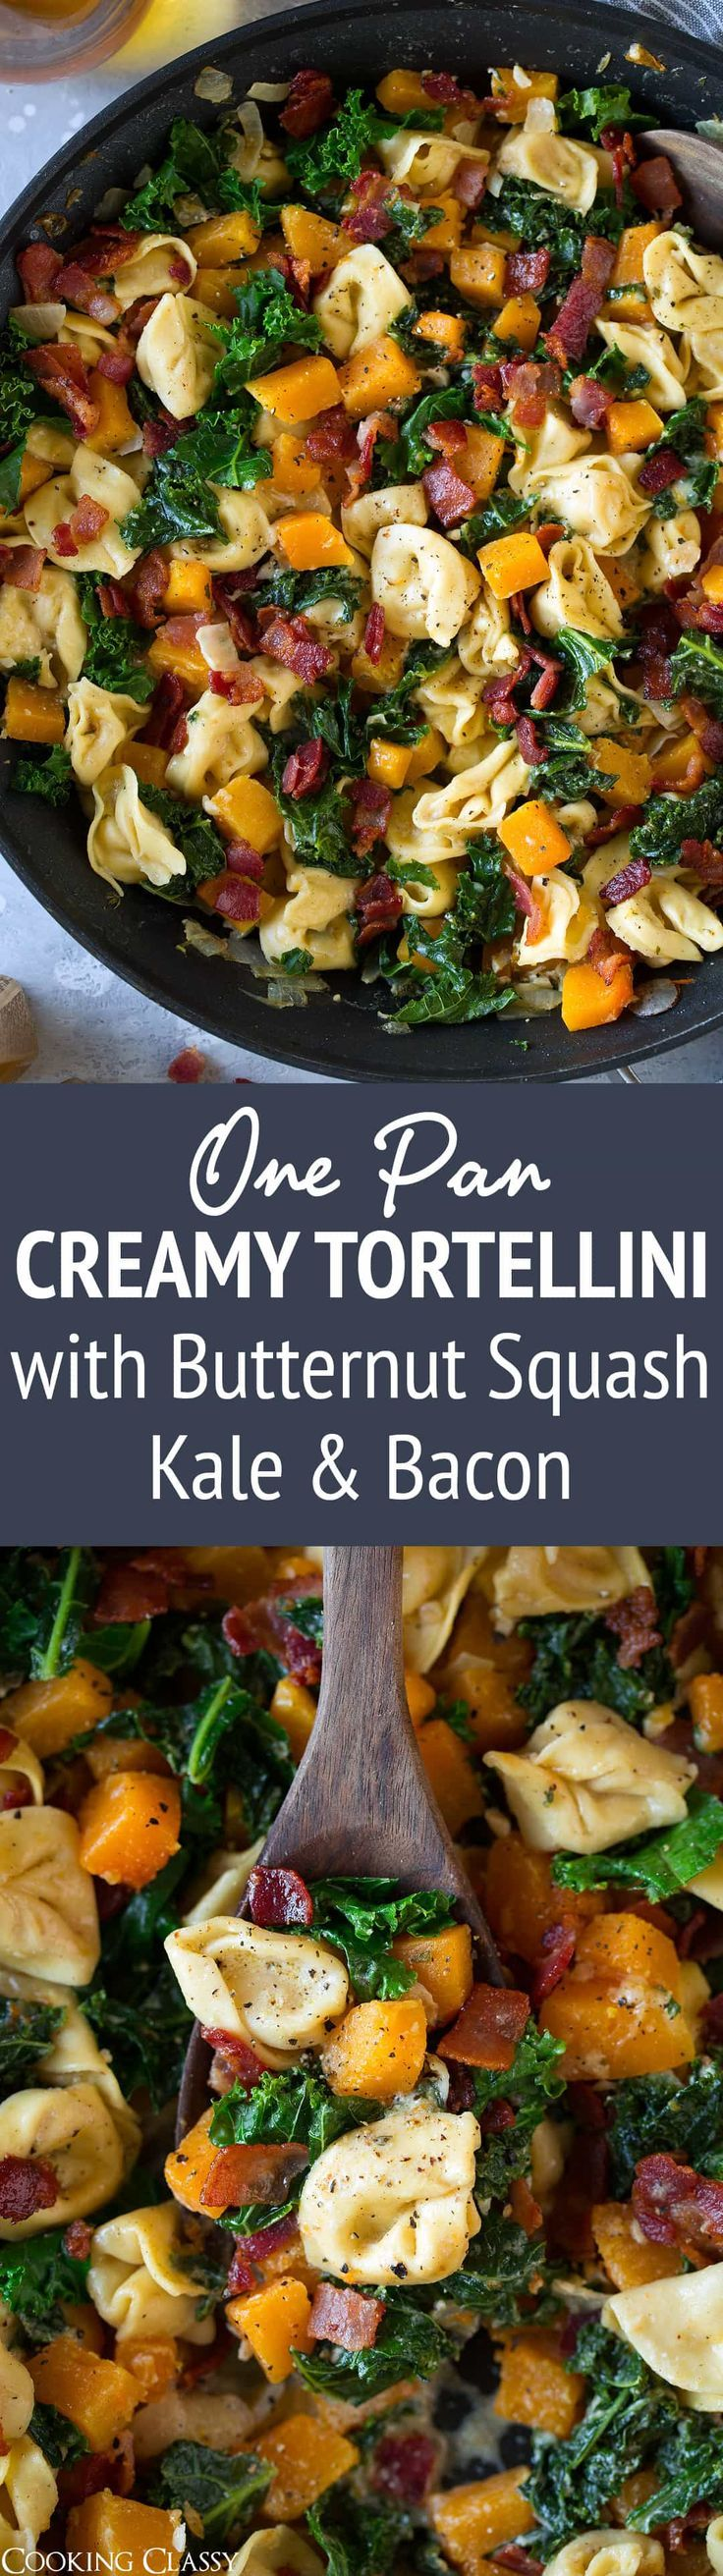 One Pan Creamy Tortellini with Butternut Squash Kale and Bacon